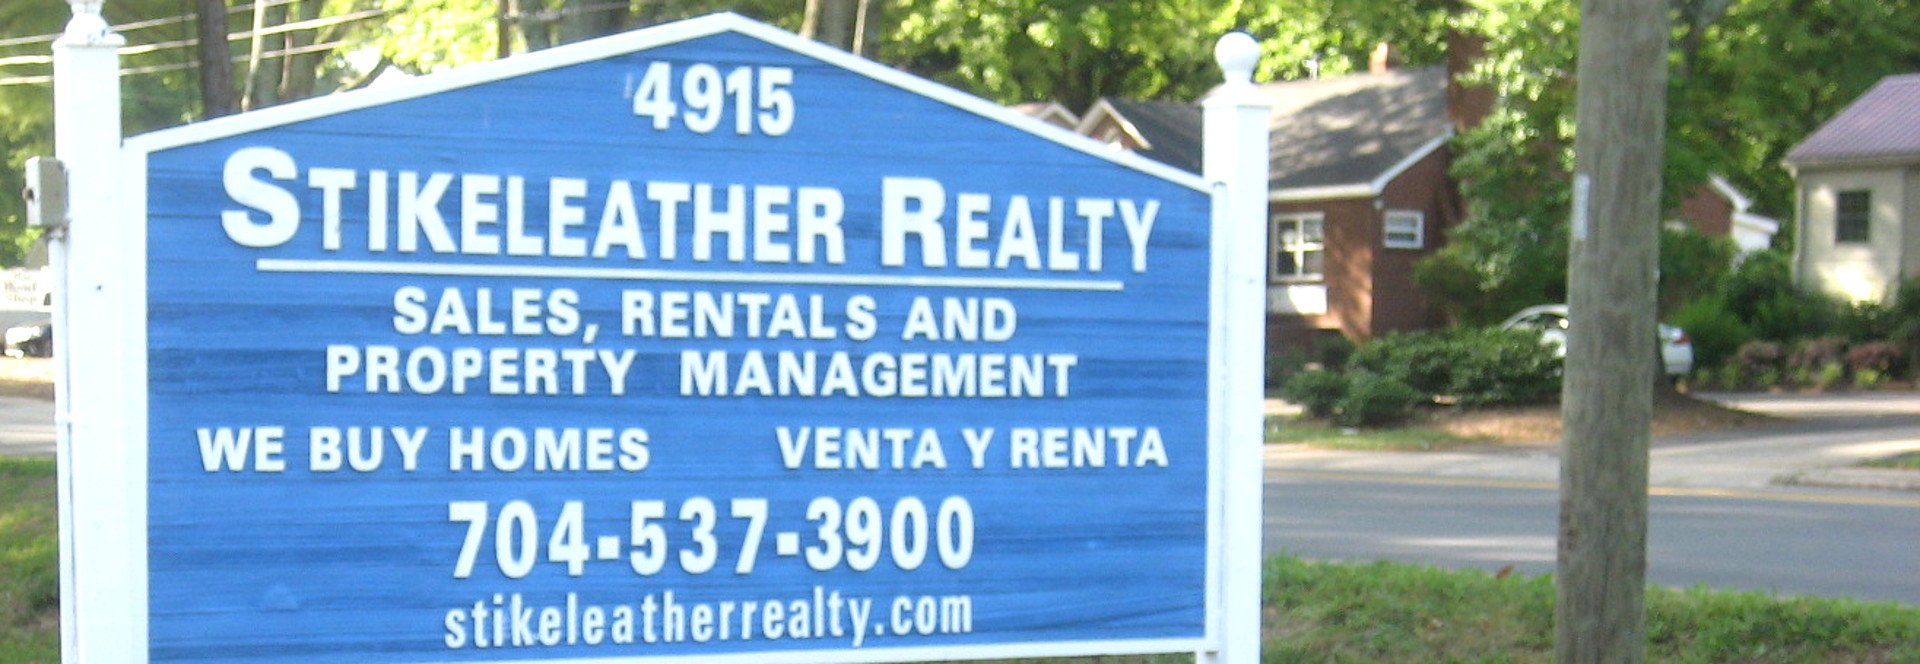 Stikeleather-Realty-Sign-2-1920x664b